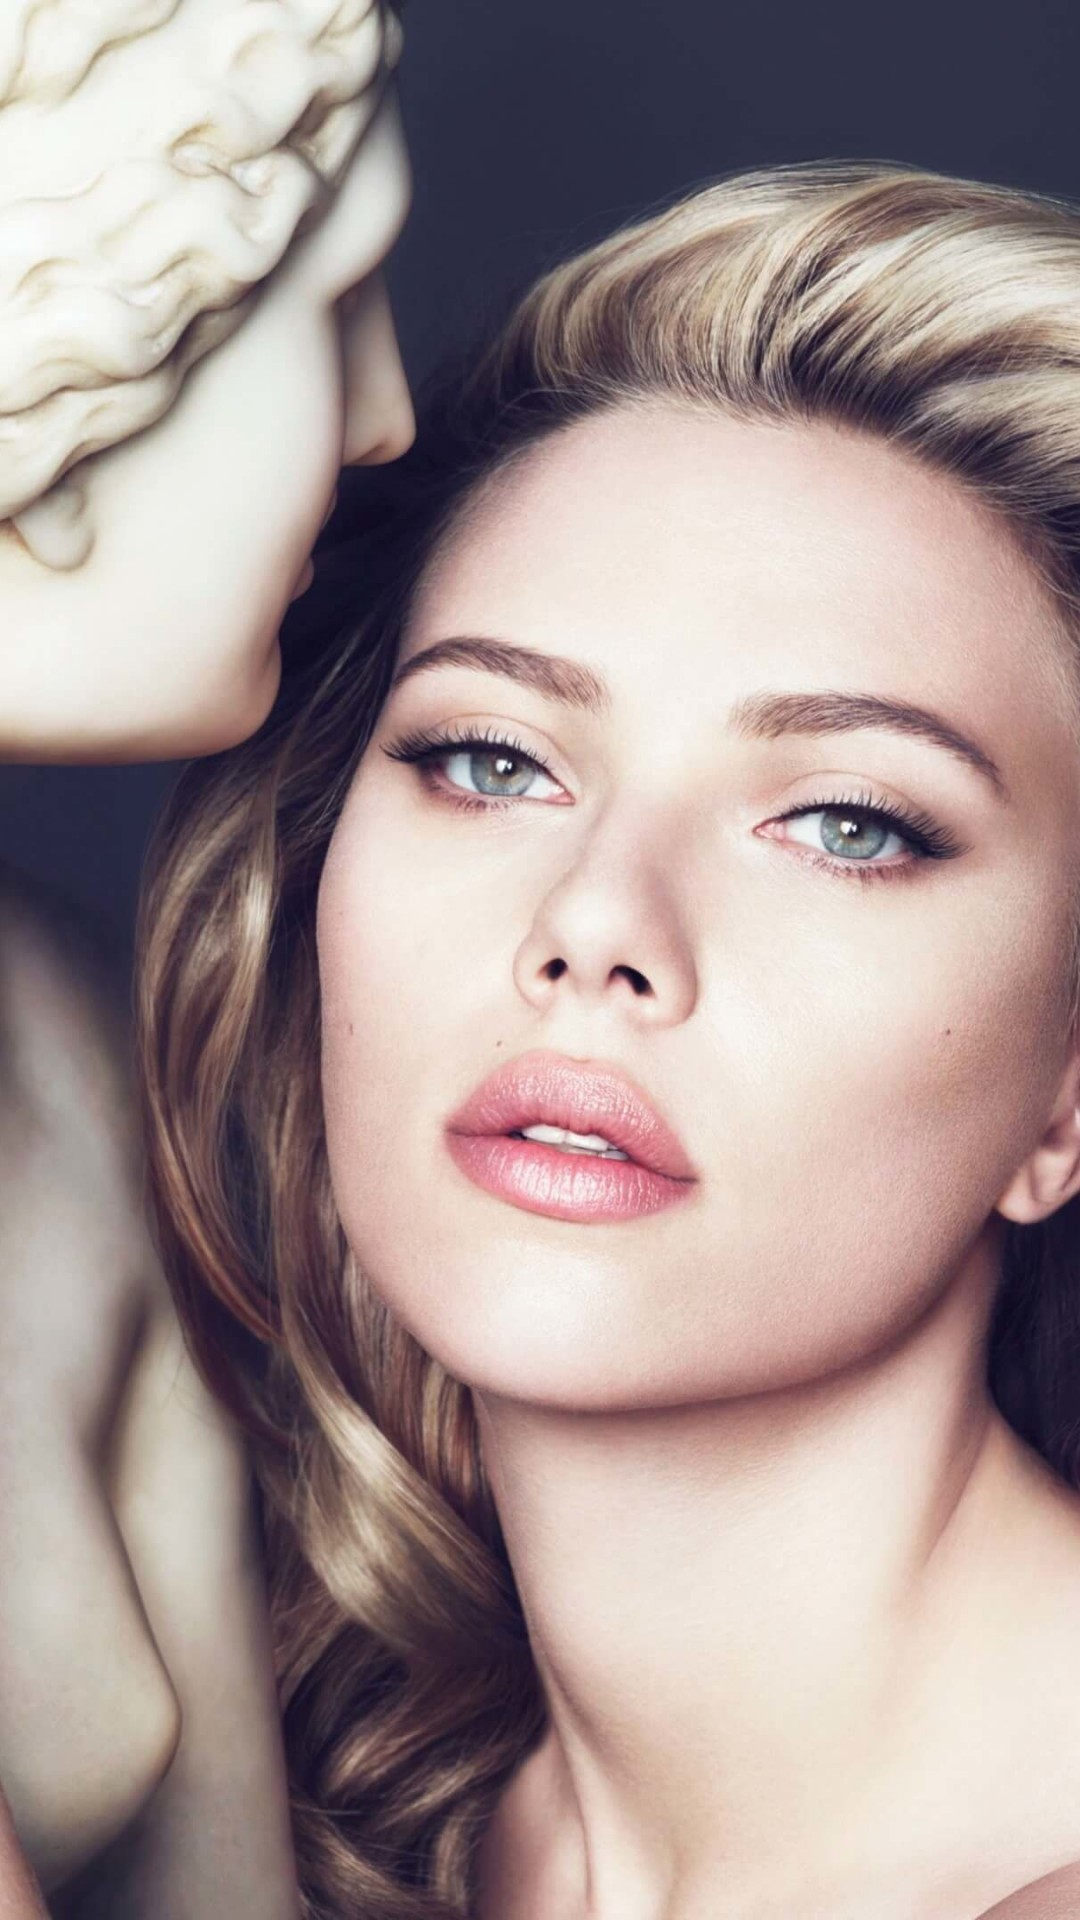 Scarlett Johansson in Dolce & Gabbana Advert Wallpaper for Motorola Moto X